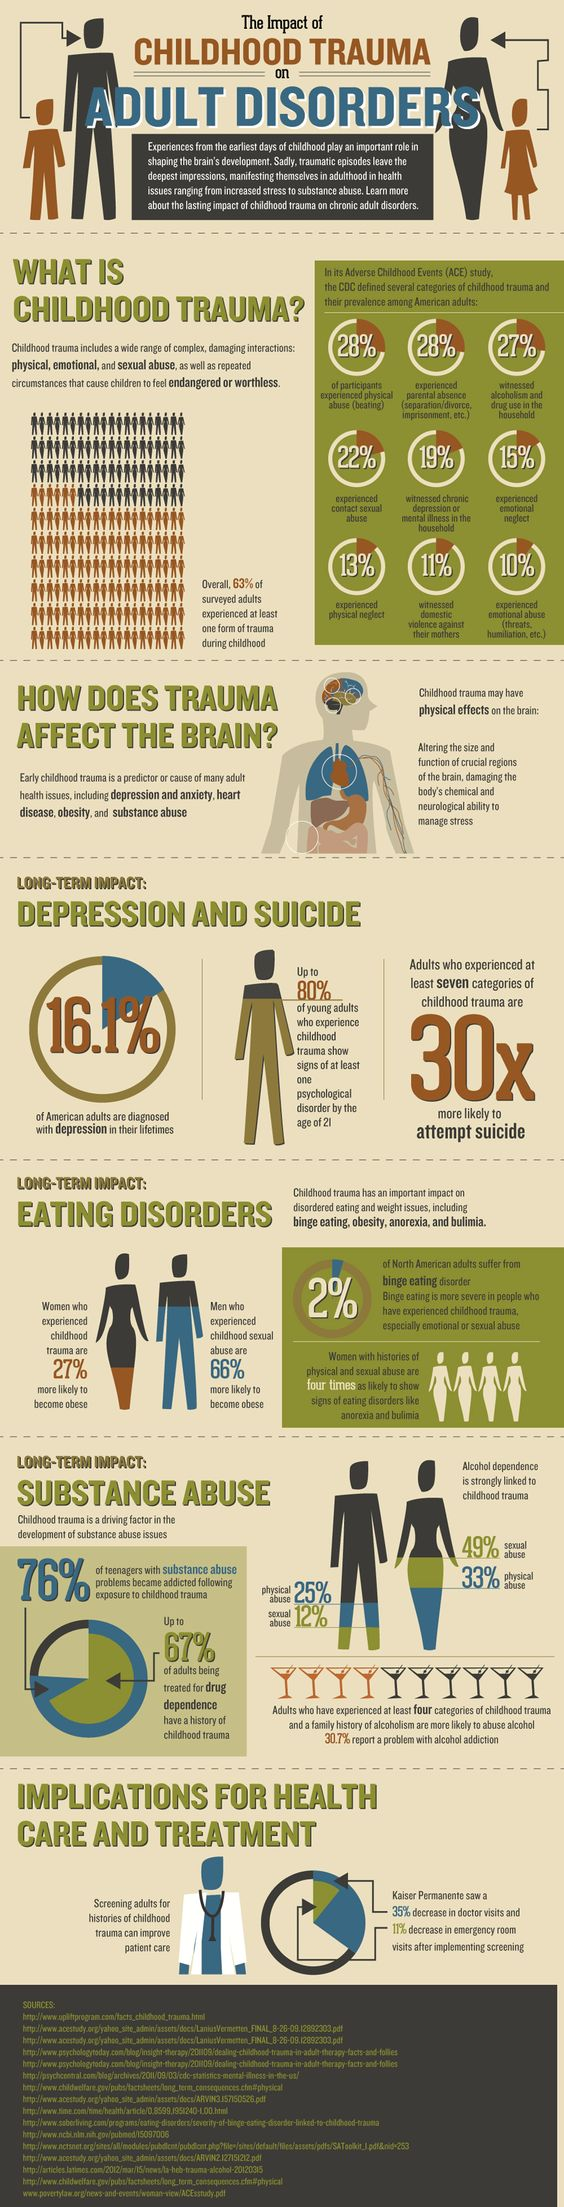 The Impact of Childhood Trauma on Adult Disorders (Infographic)...don't judge, you never know a person's past